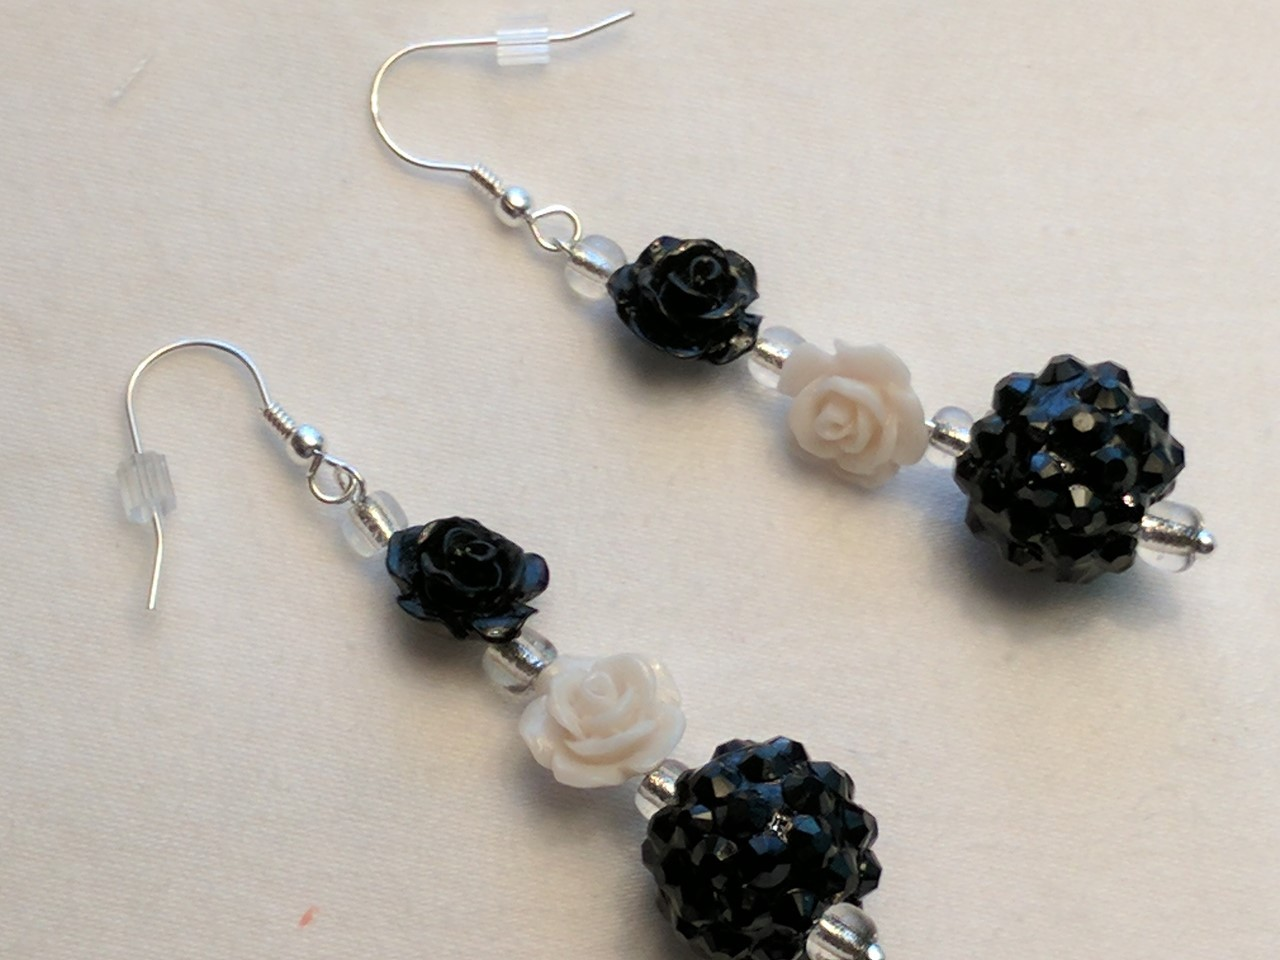 Primary image for Unique Creations Black White Roses and Blackberry Drop Earrings, Custom Made